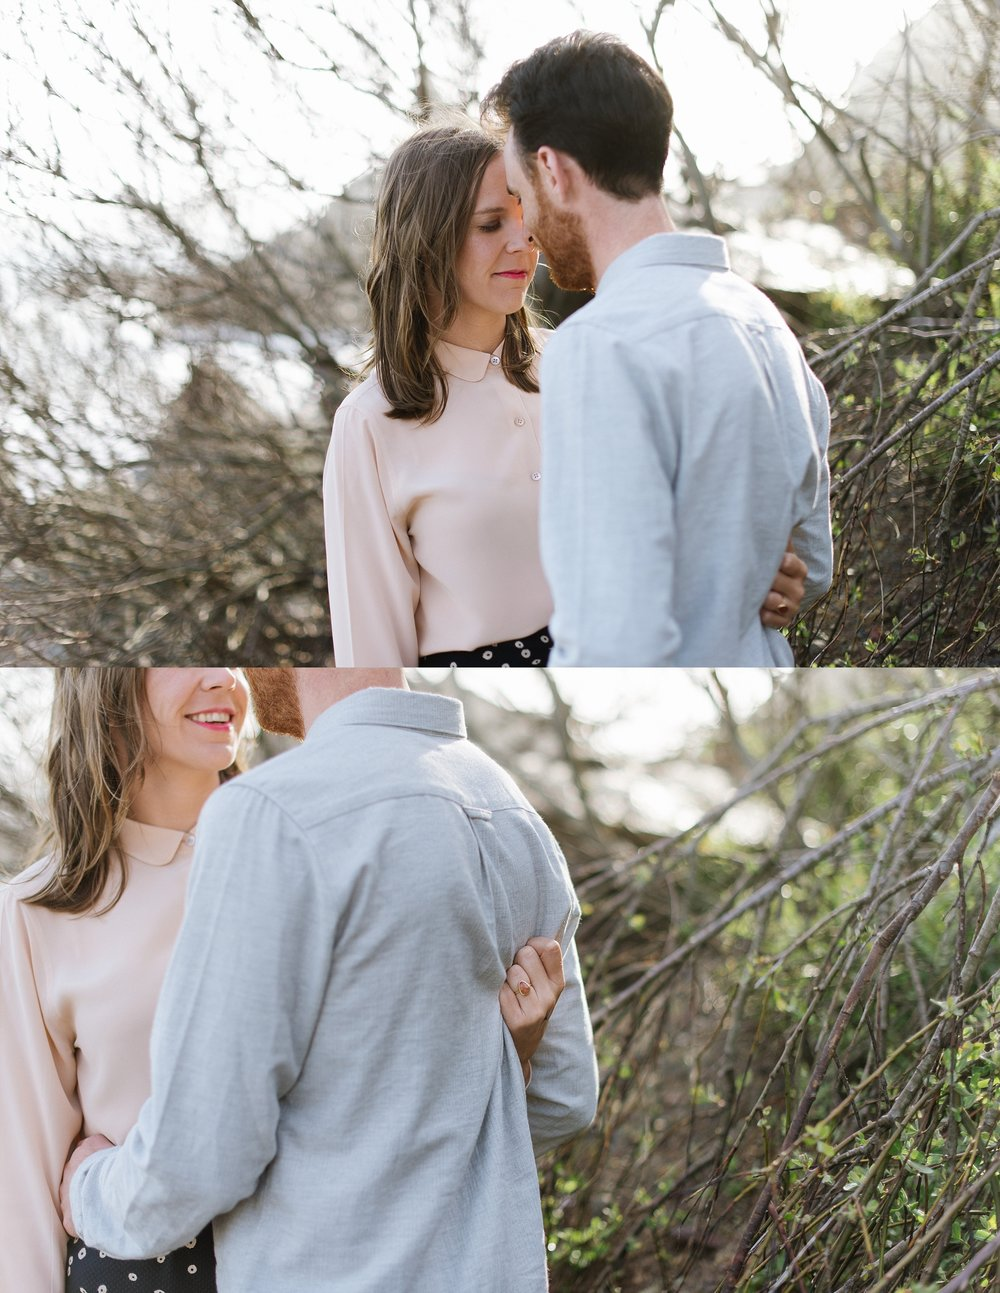 black_sands_beach_engagement_chelsea_dier_photography_0004.jpg